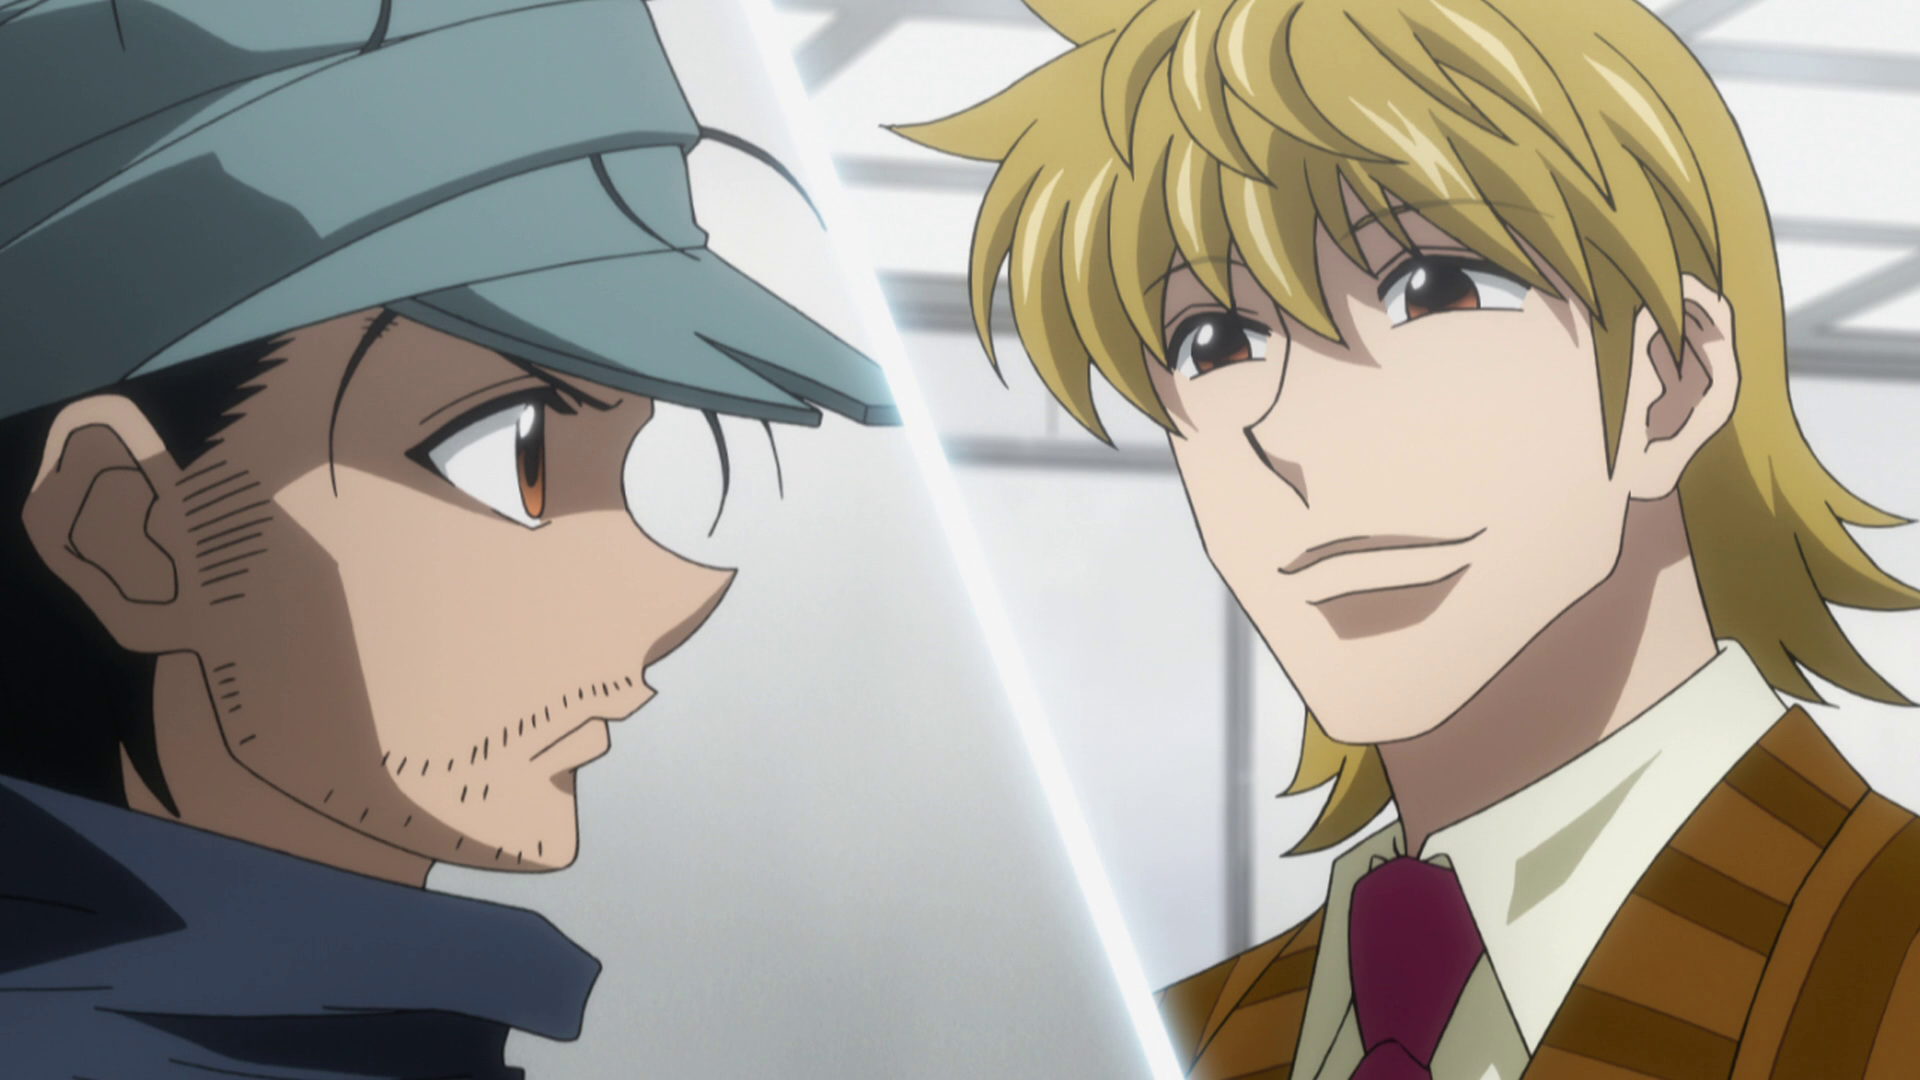 kurapika and leorio relationship